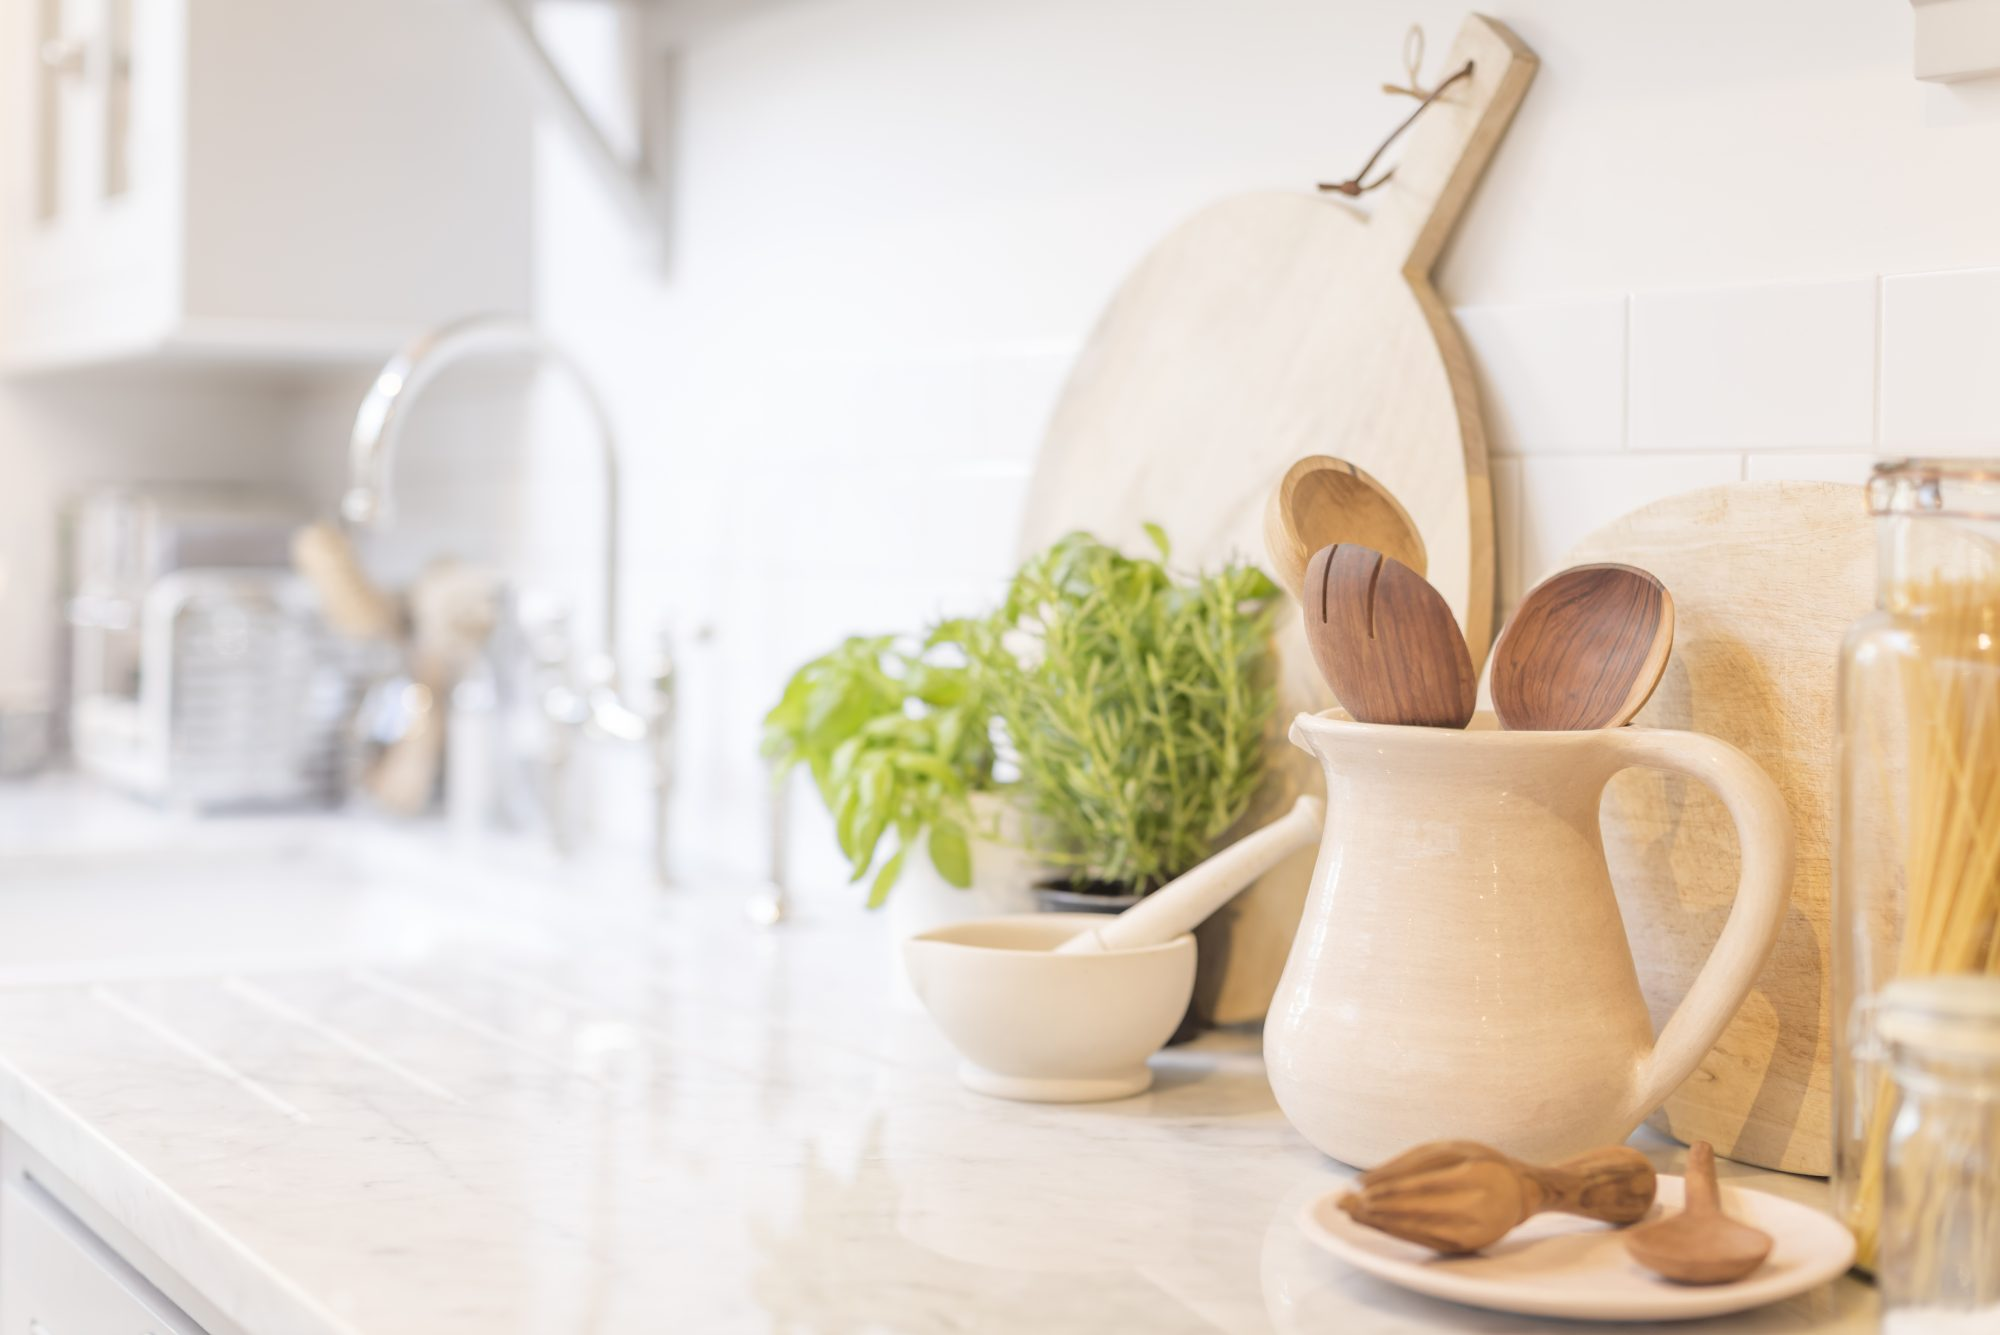 Selling Your Home? The Best Kitchen Staging Tip You'll Ever Read